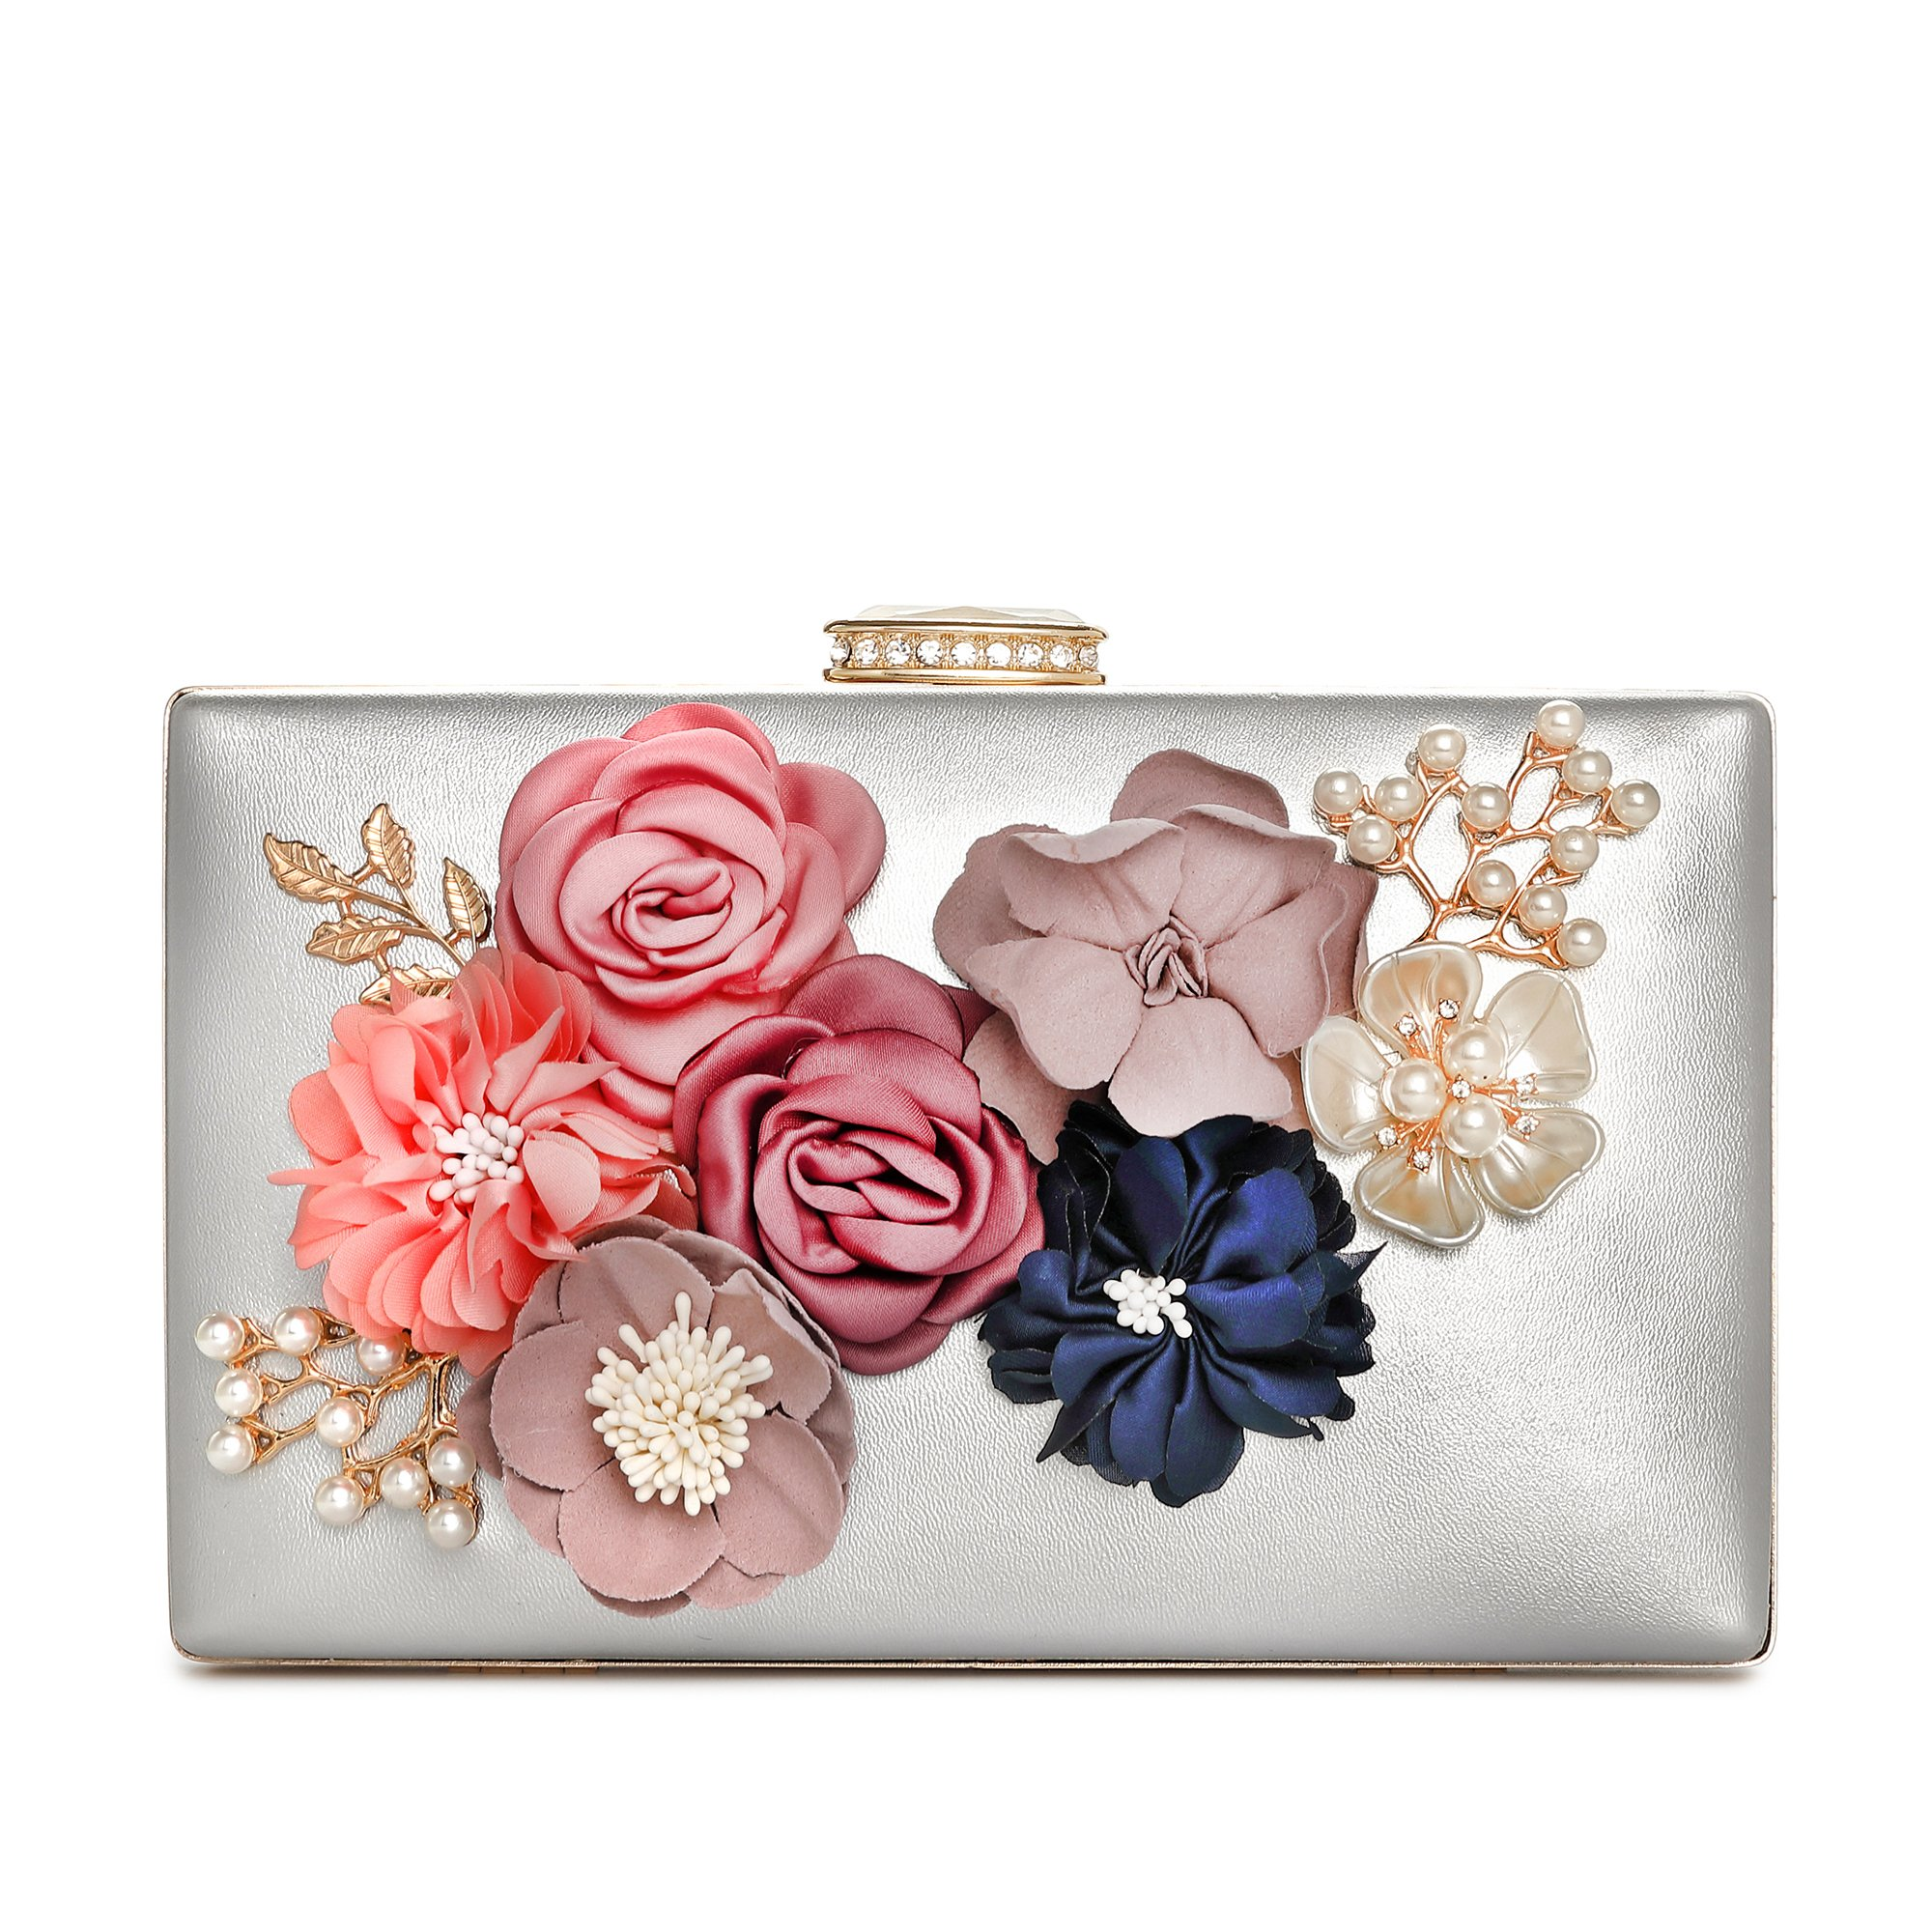 Minicastle Women's Satin Flower Evening Clutch Bags Pearl Beaded Evening Handbag For Prom Bride Wedding Silver